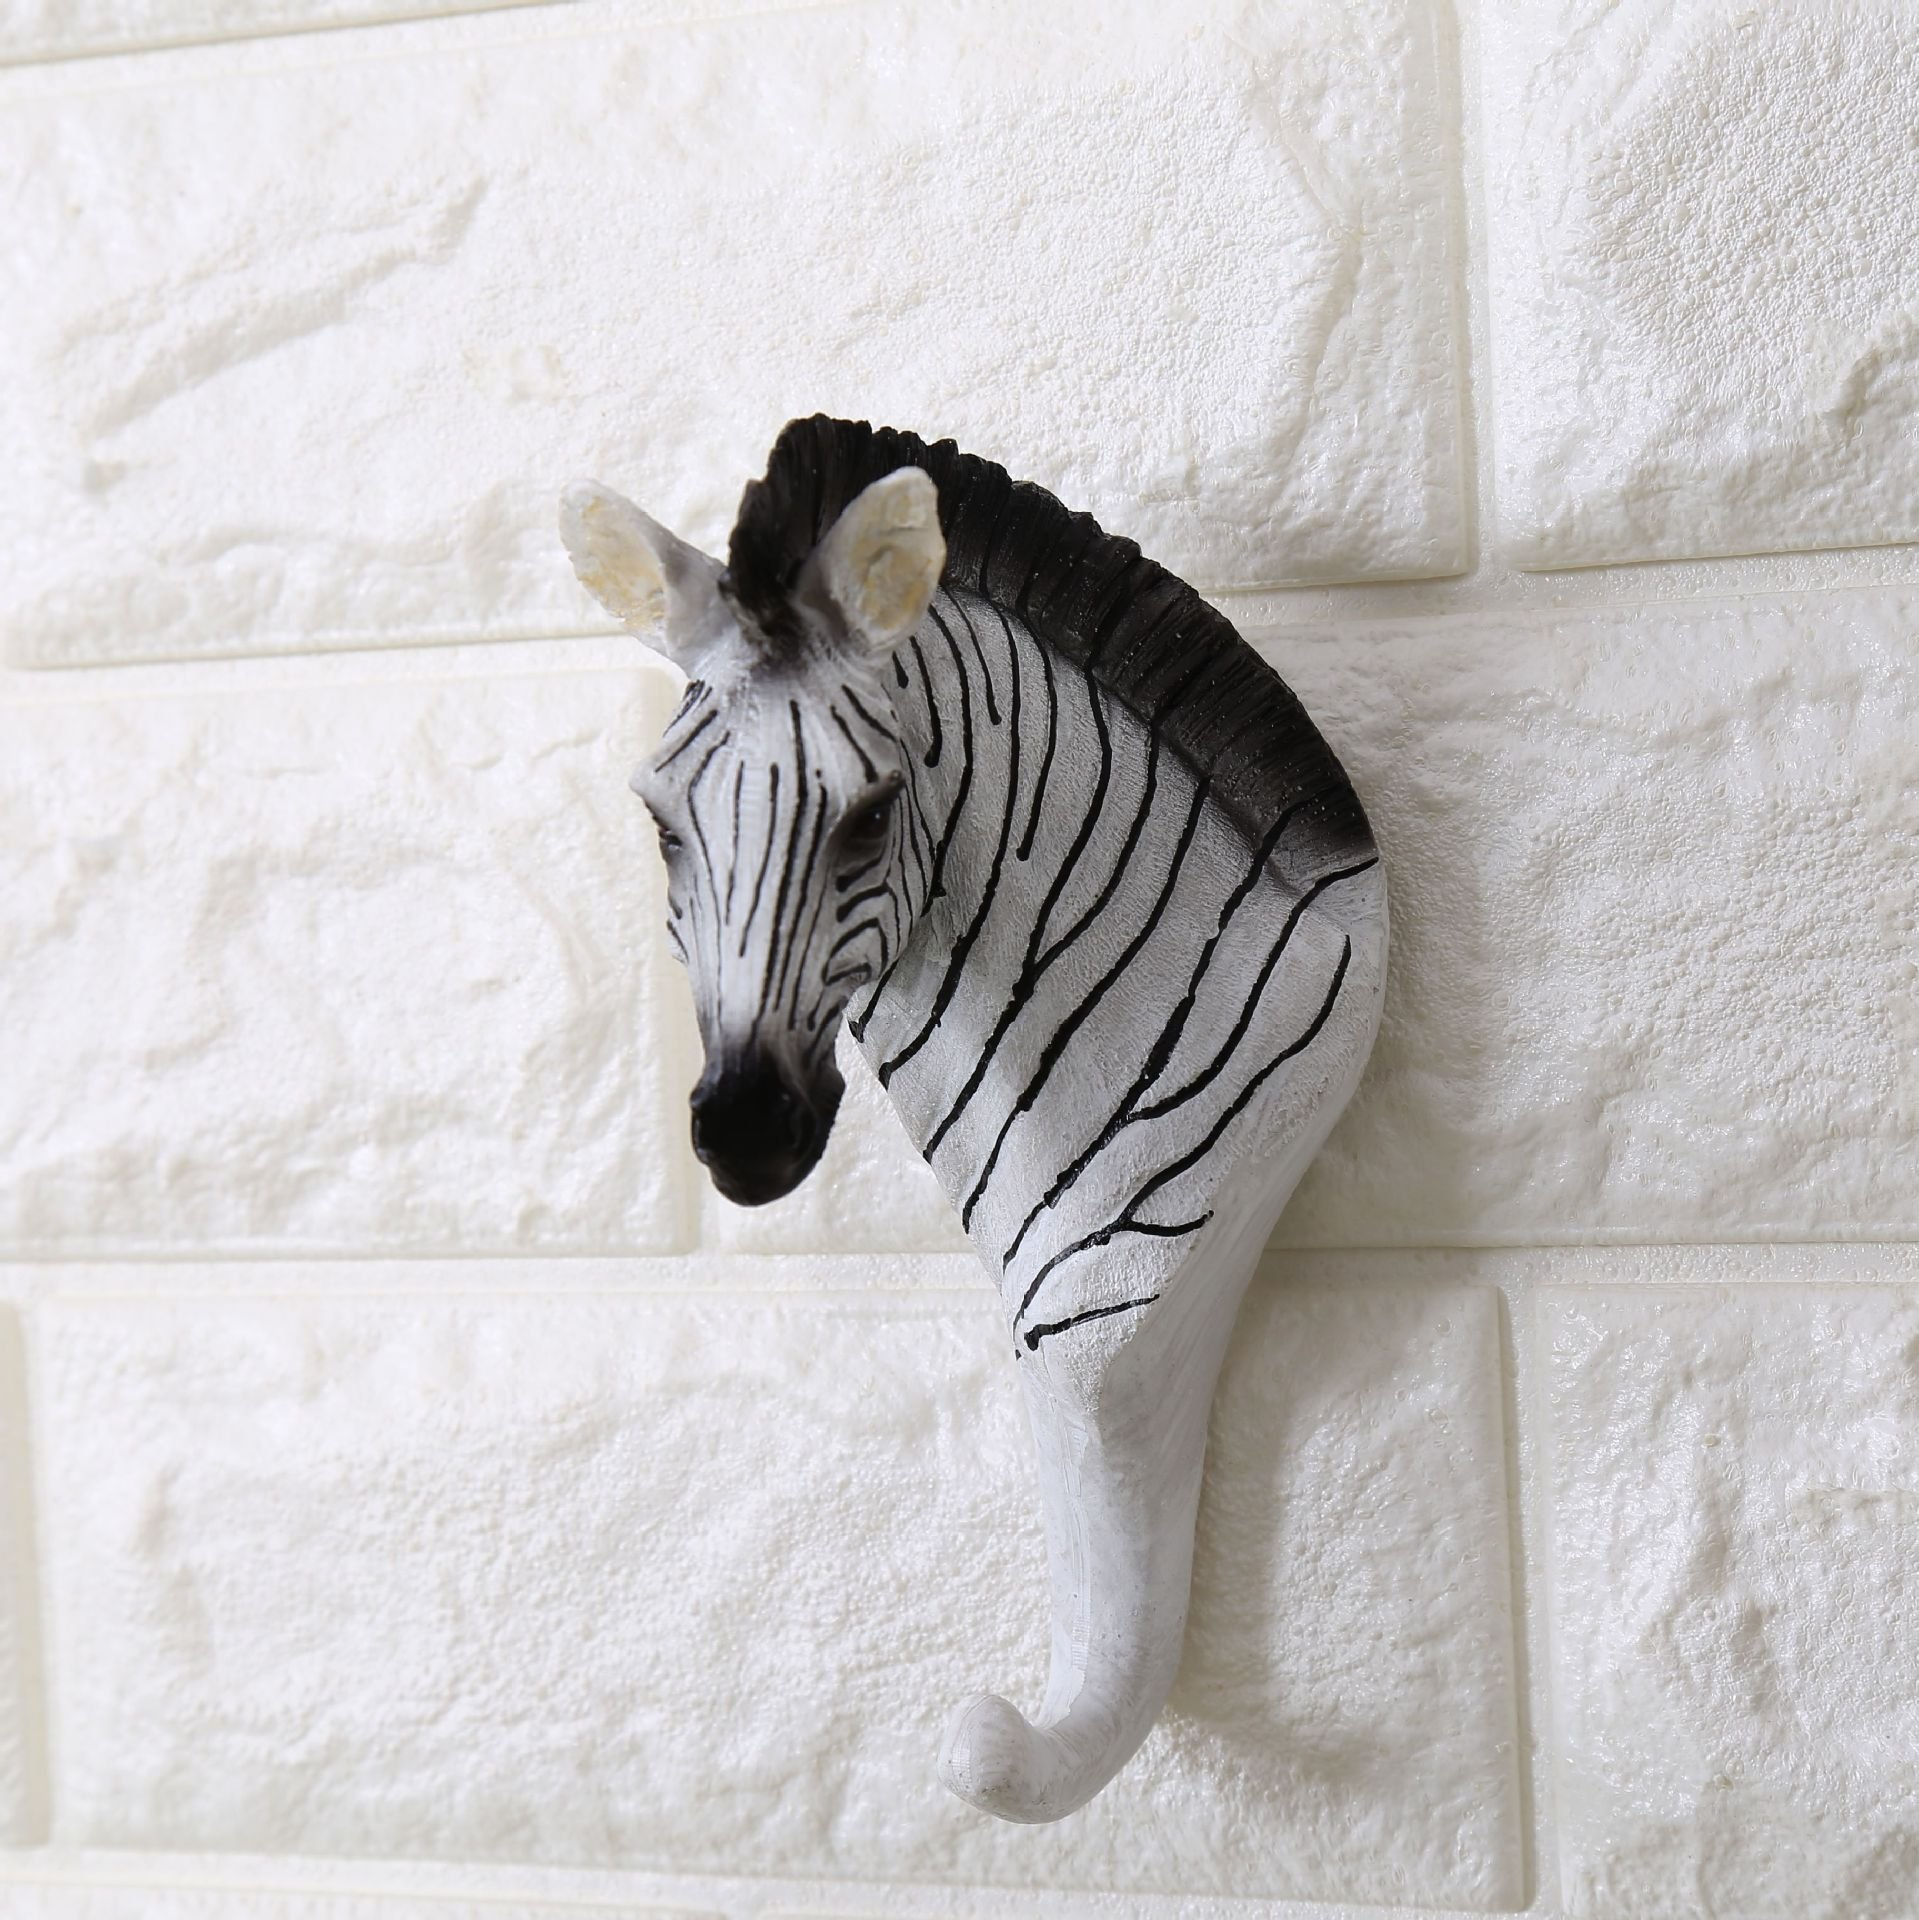 Faux Animal Deer Zebra Head Wall Mount Hanger Animal Shaped Coat Hat Hook Heavy Duty, Hanging Wall Sculpture Home Decor Decorative Gift by Sunyiny